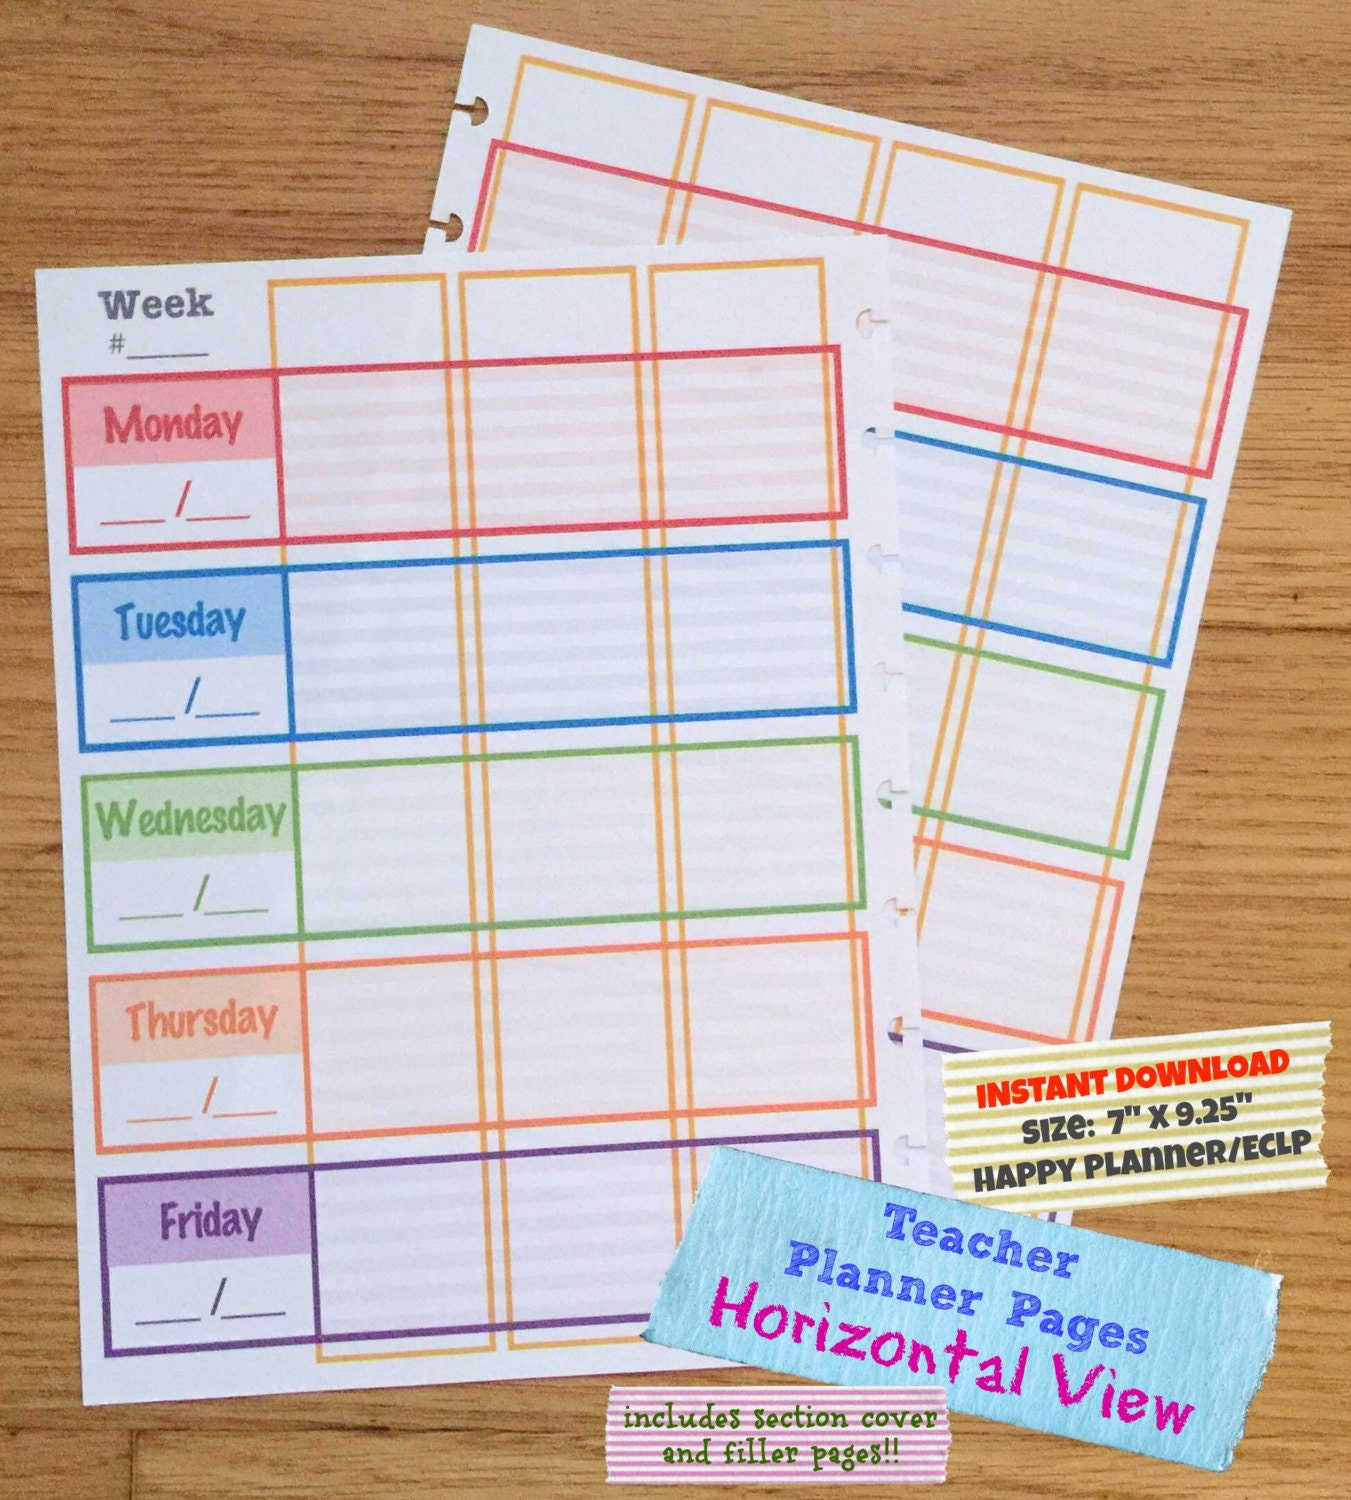 Bright image with printable teacher planner